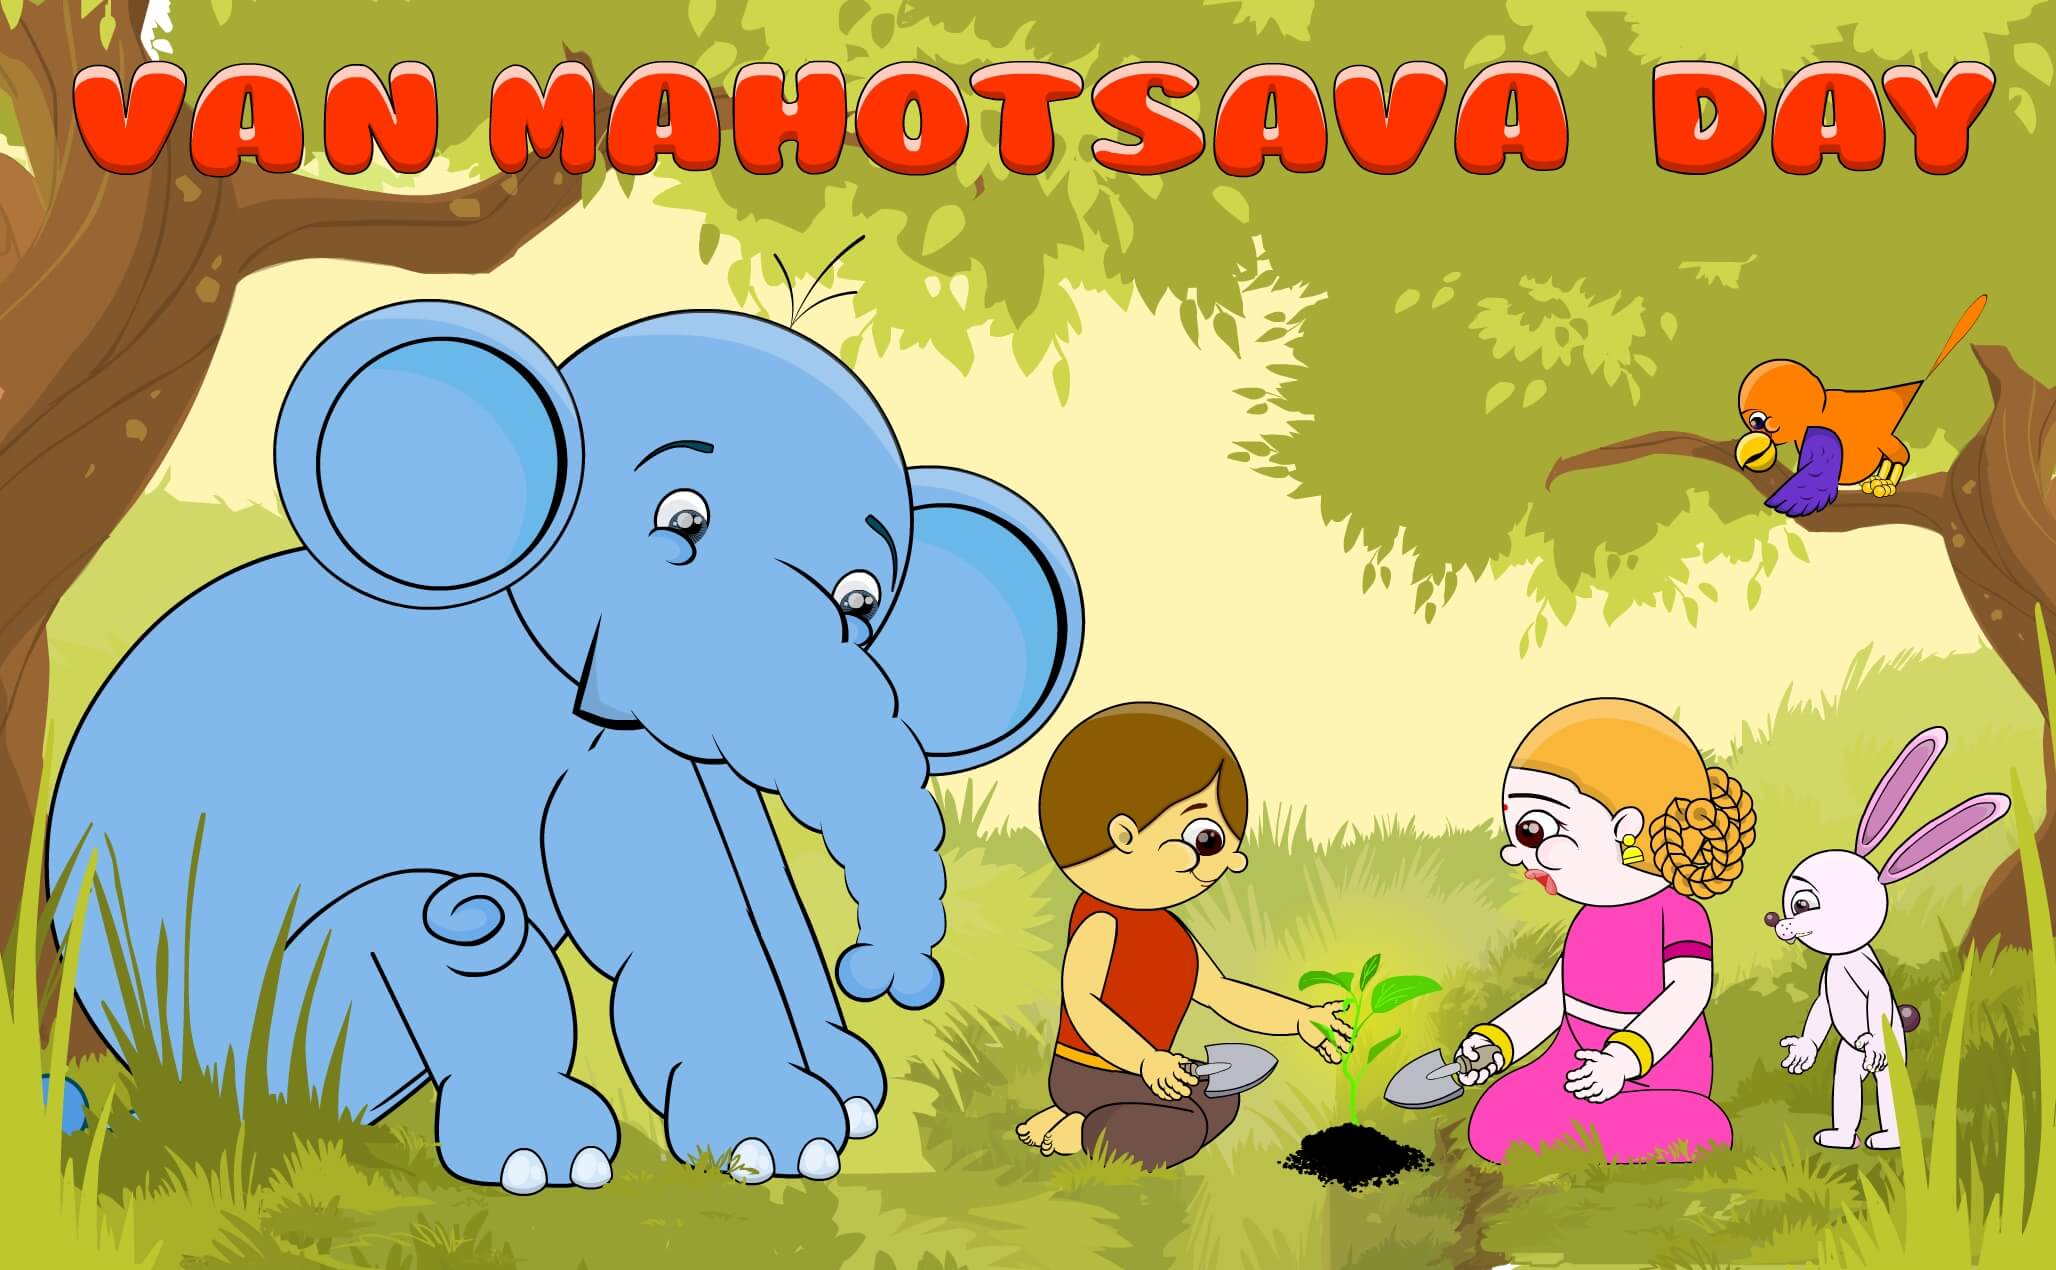 van mahotsav day tree planting cartoon jungle save nature wallpaper